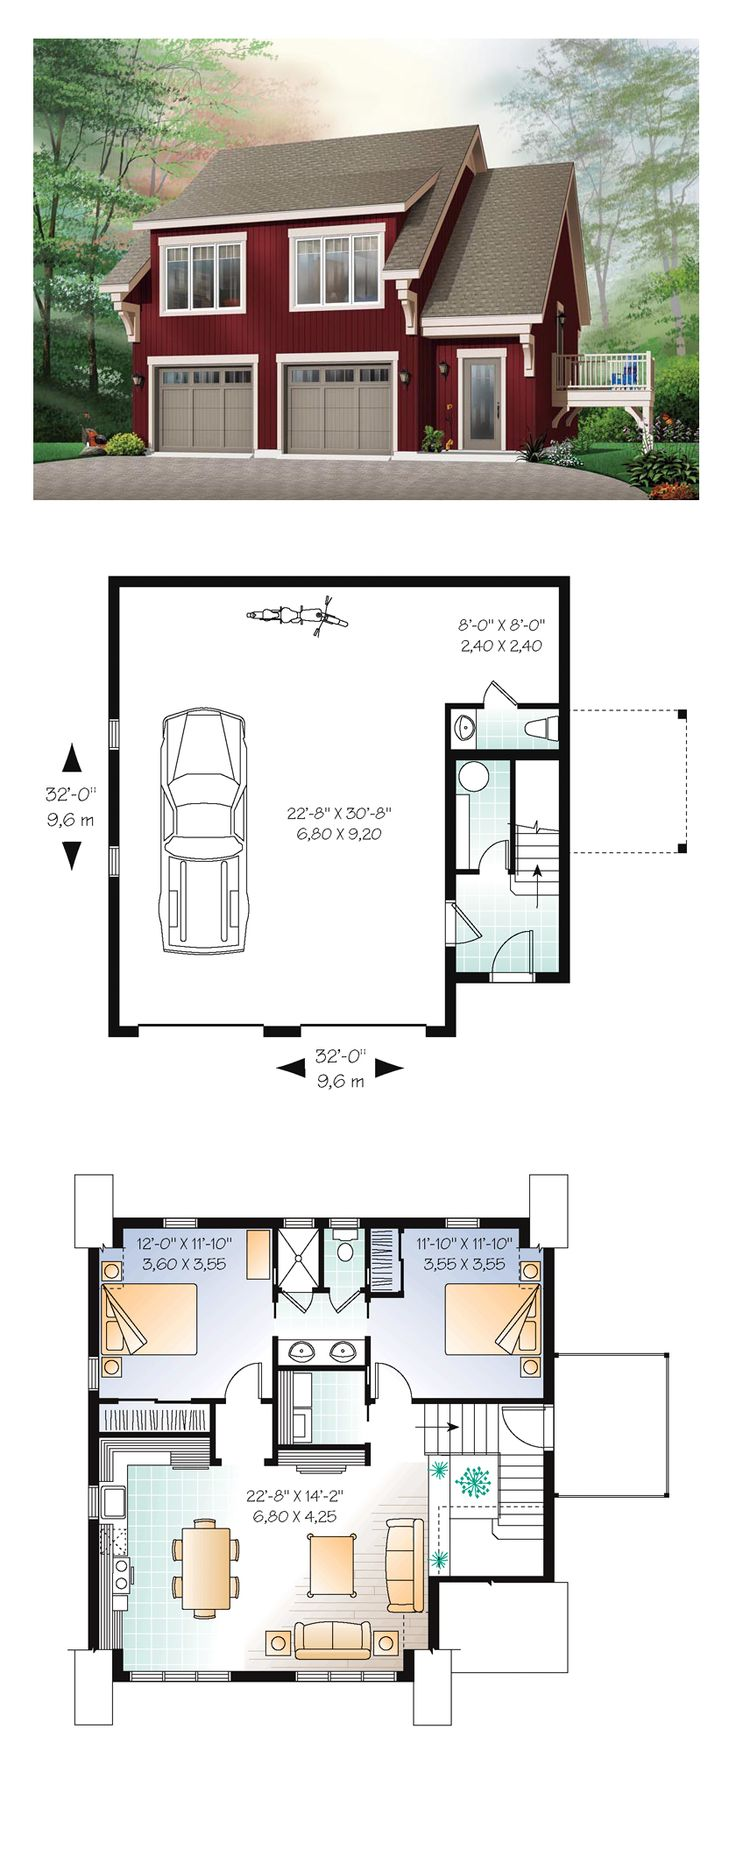 superior 2 bedroom garage apartment plans #3: Garage Apartment Plan 64817 | Total Living Area: 1068 sq. ft., 2